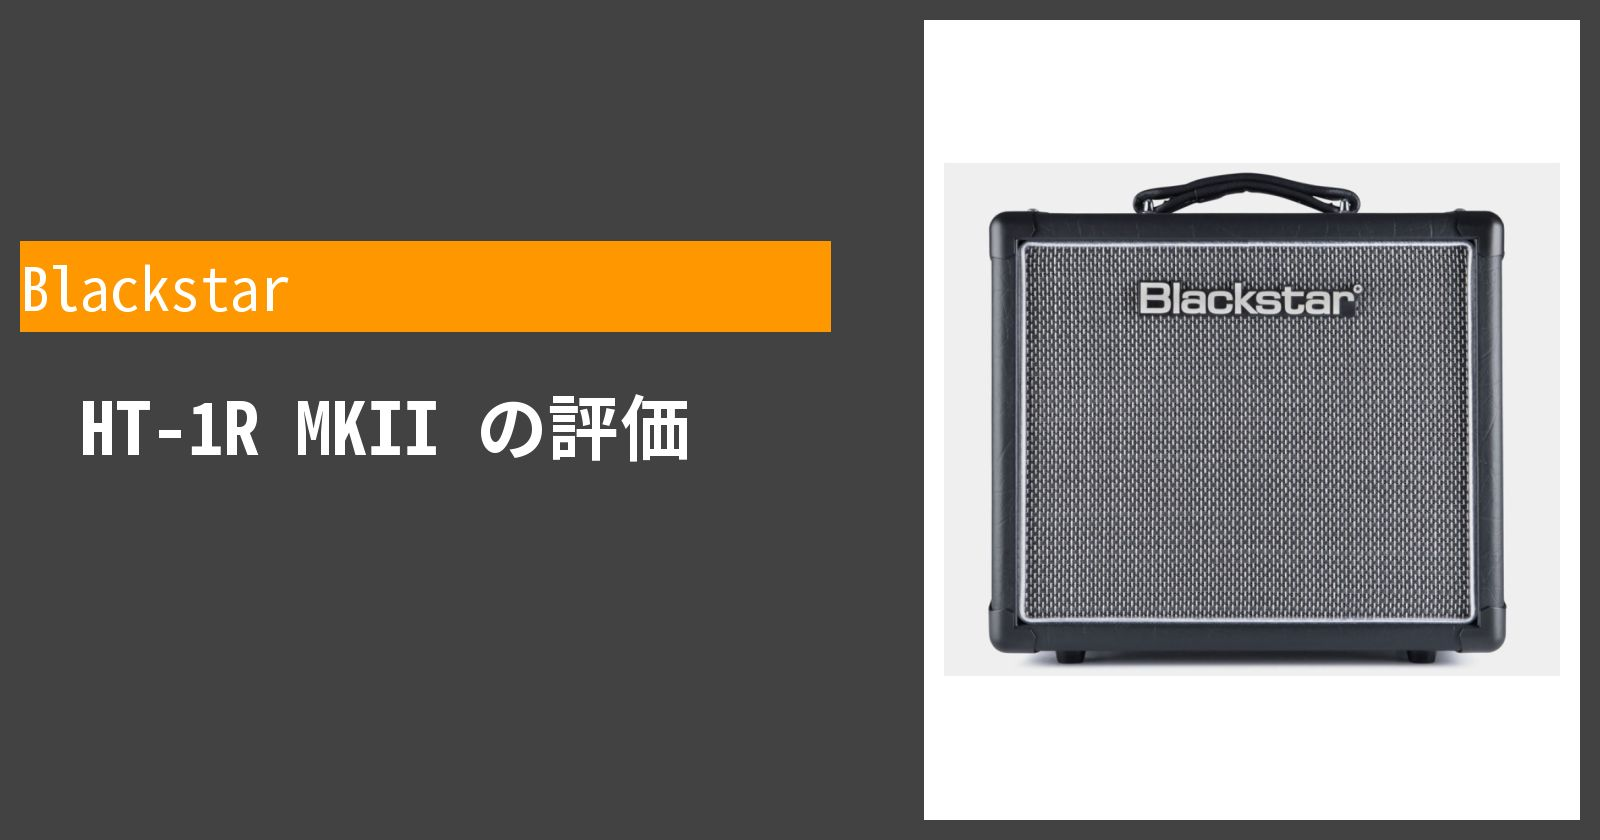 HT-1R MKIIを徹底評価